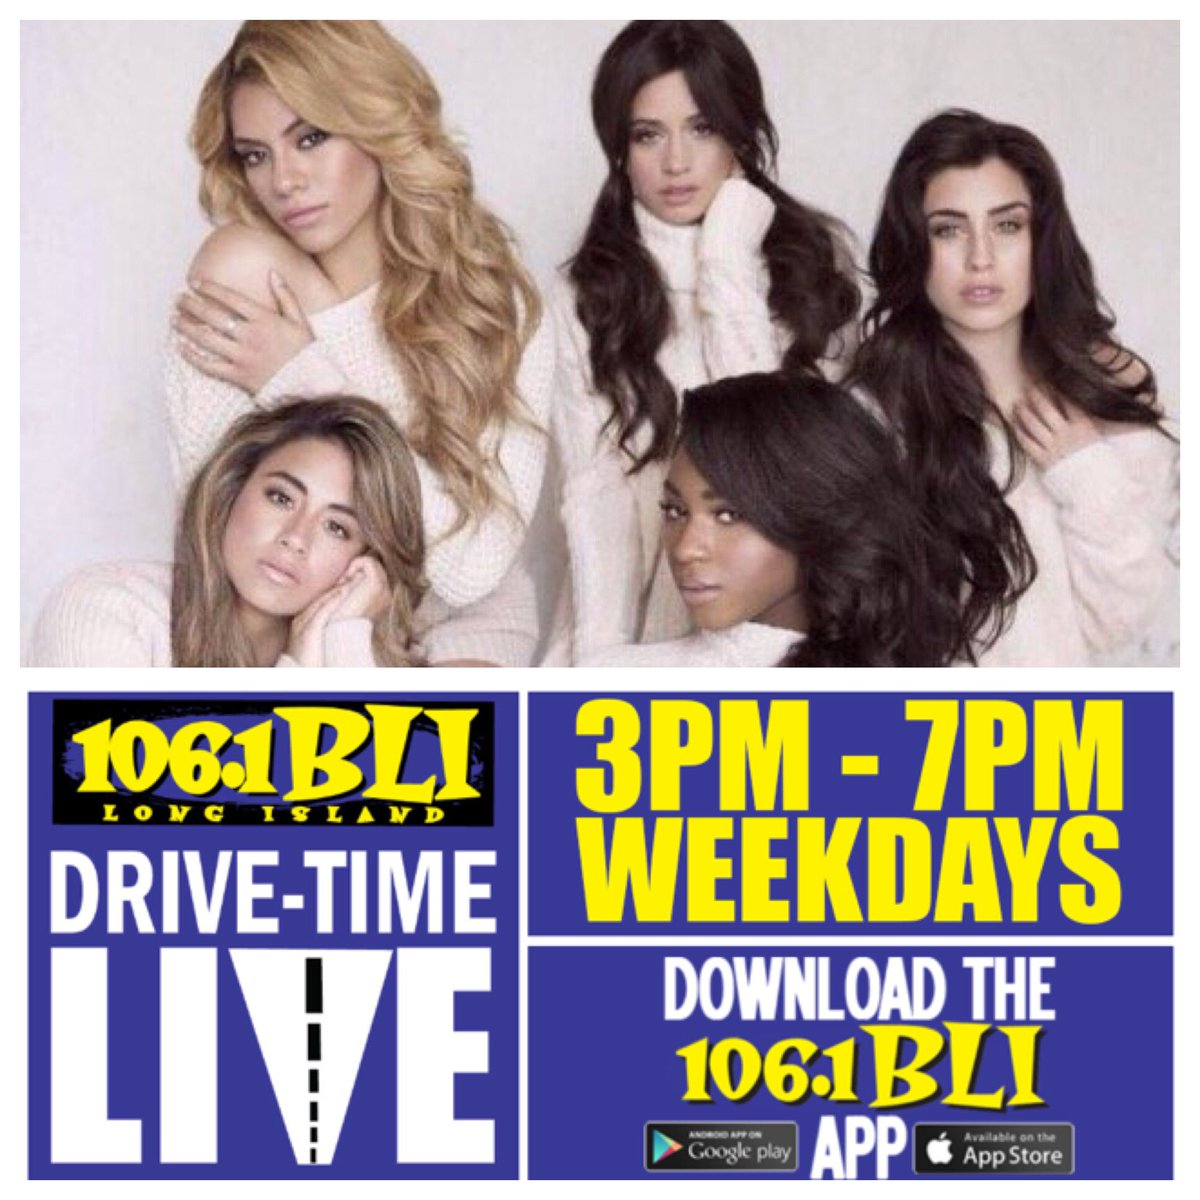 #HARMONIZERS! #DTLRadio is w/ #5H tomorrow, so send your ?'s using #DTLasks5H. Maybe @SykeOnAir & @MJonBLI will ask! https://t.co/FXvhFLJgAN